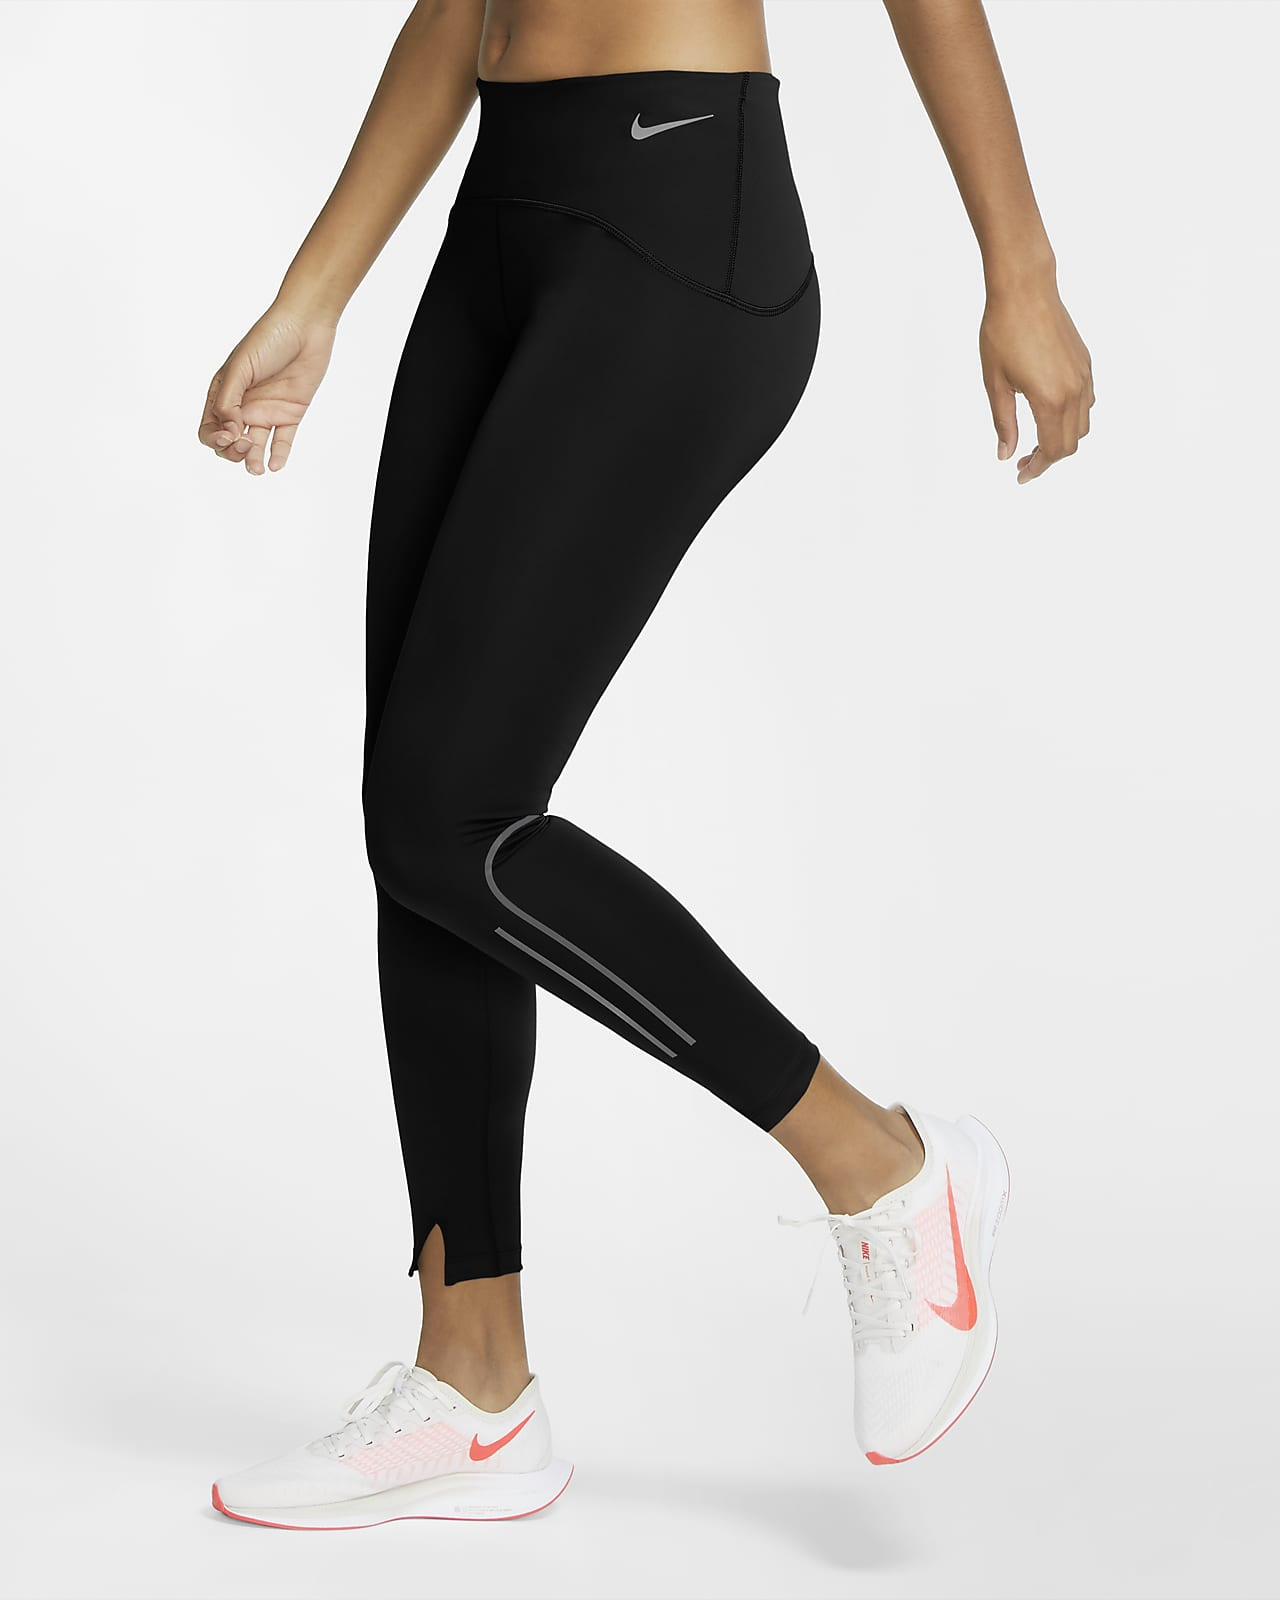 Nike Speed 7/8-Lauf-Tights in mattem Design für Damen